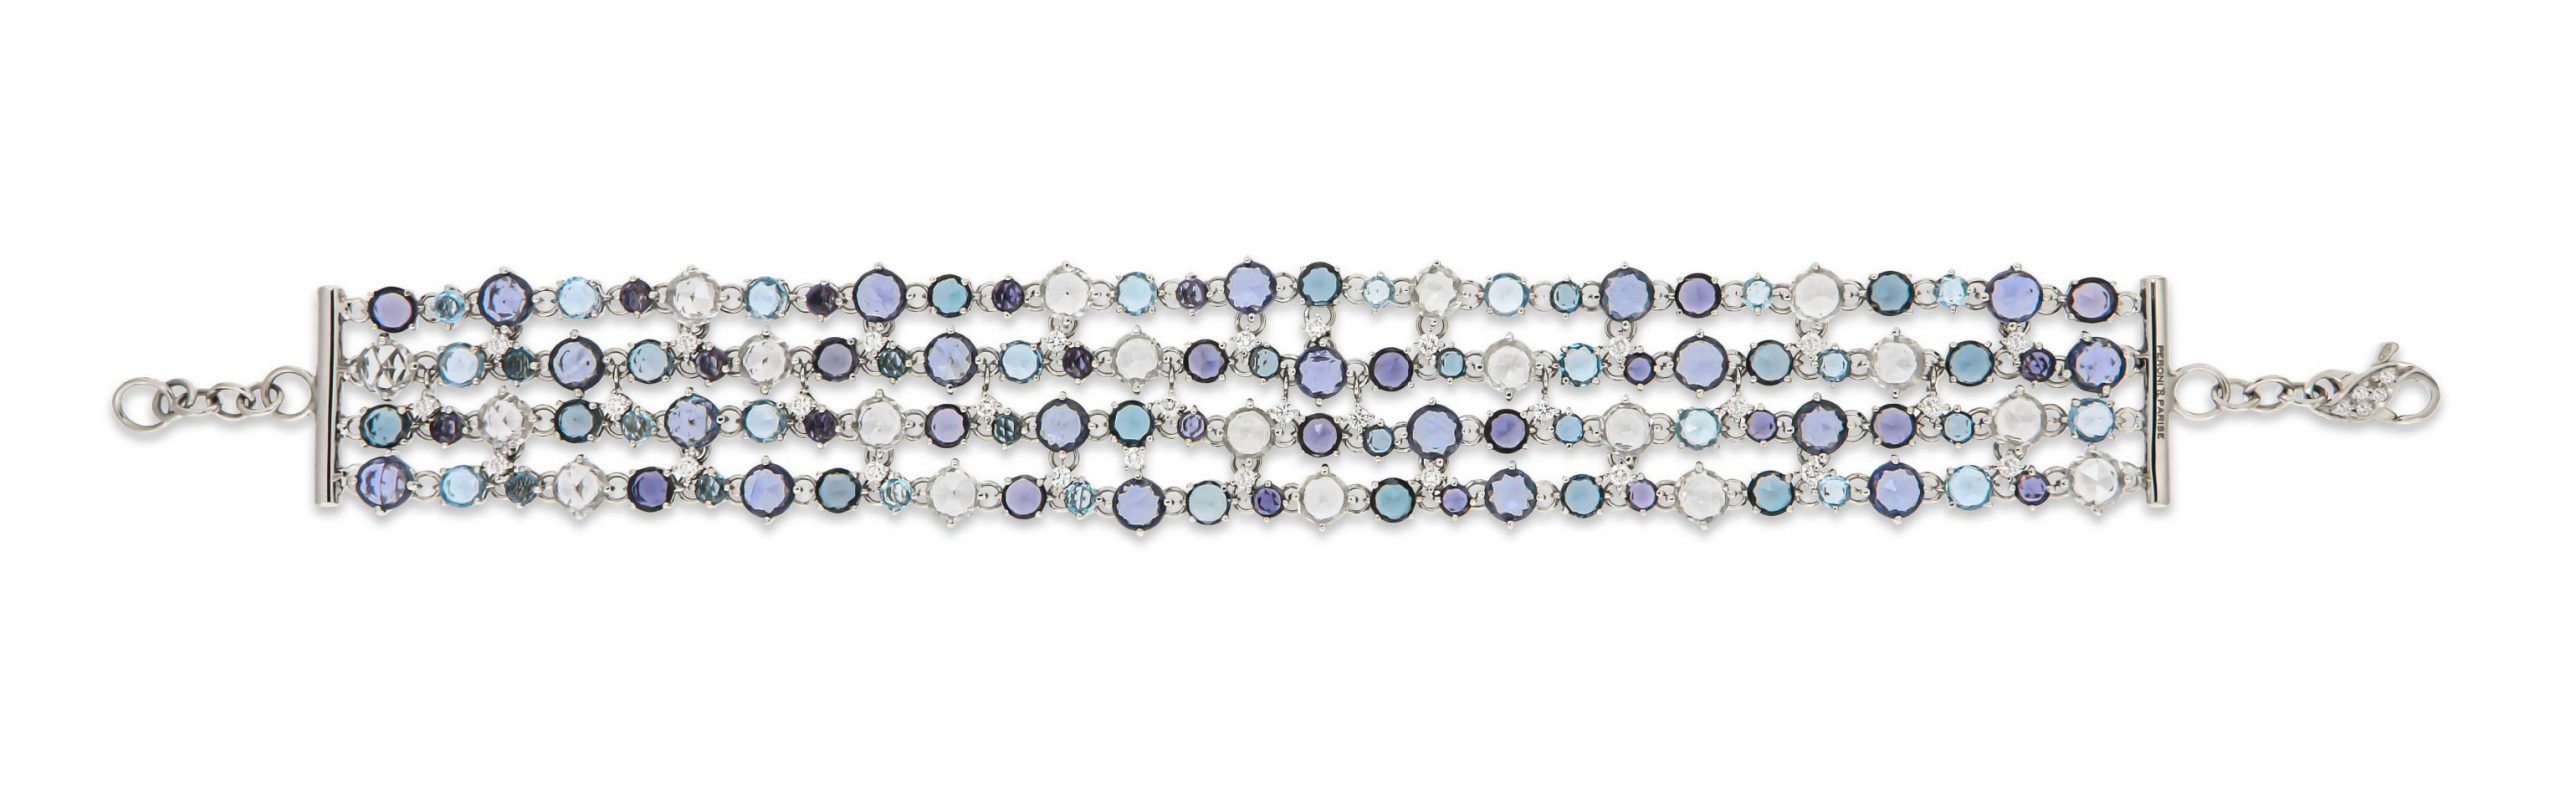 white gold bracelet with blue and white sapphire, toapz and diamonds